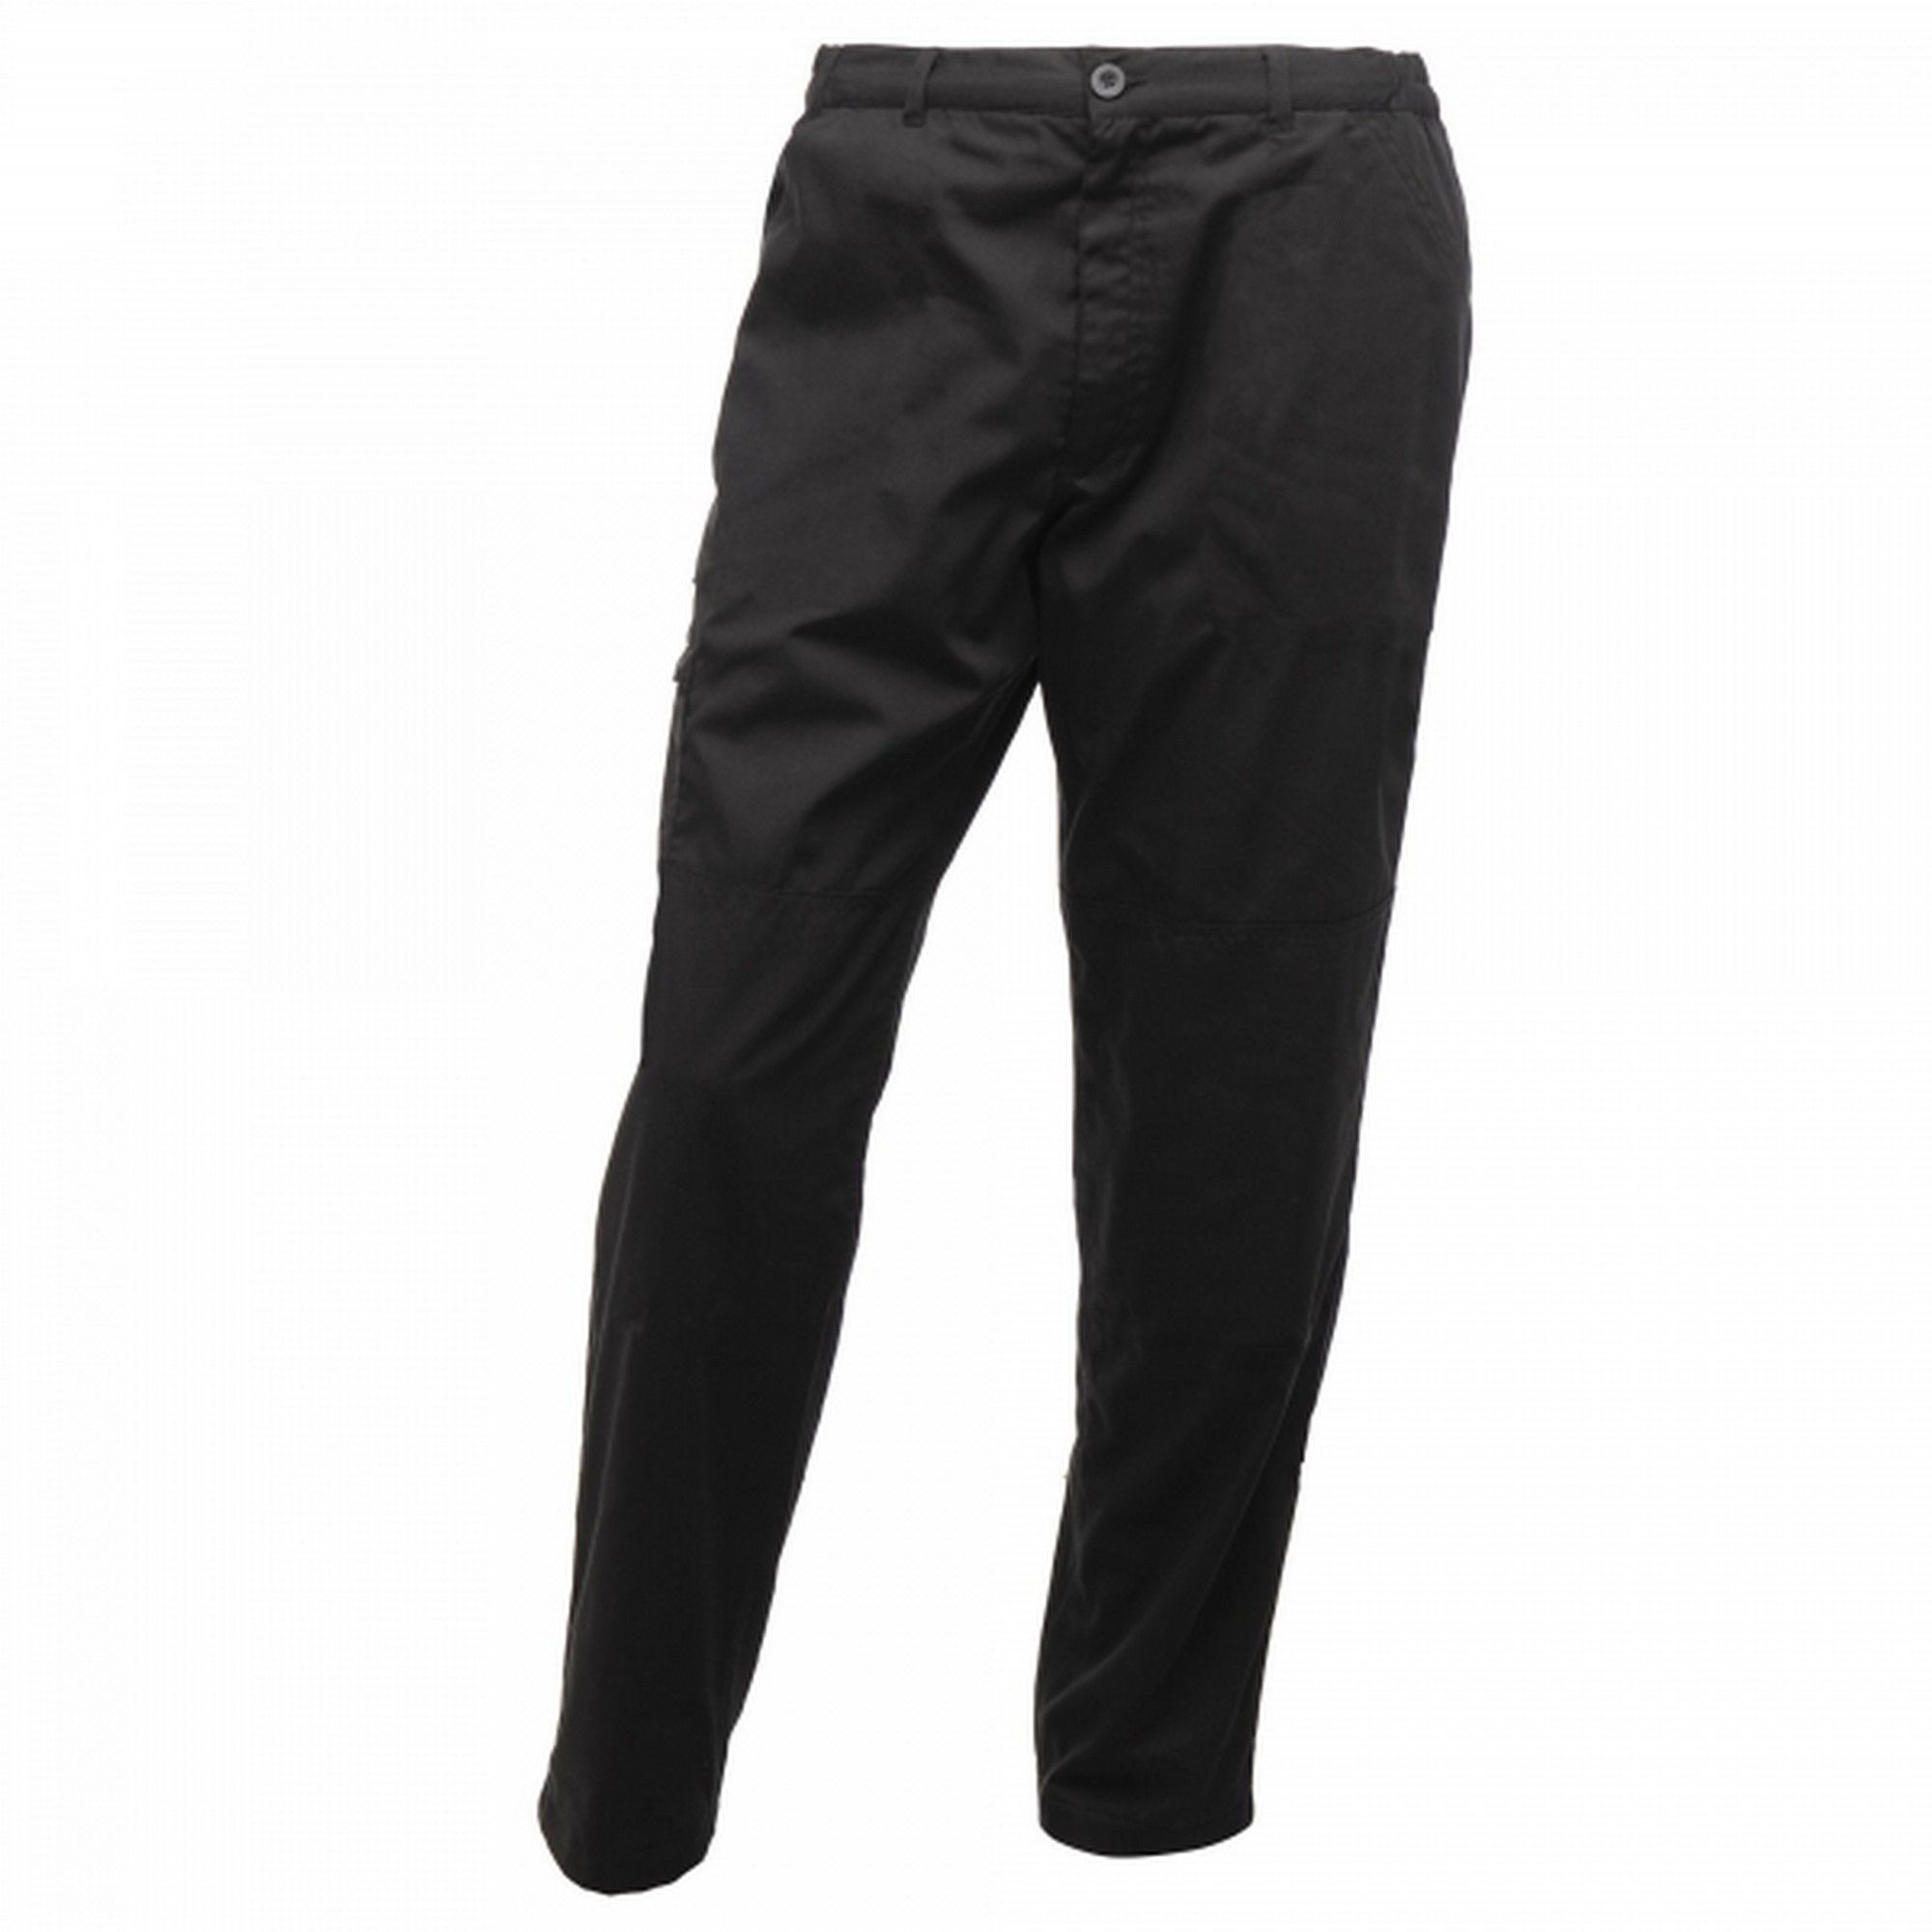 Regatta Mens Pro Cargo Waterproof Trousers - Short